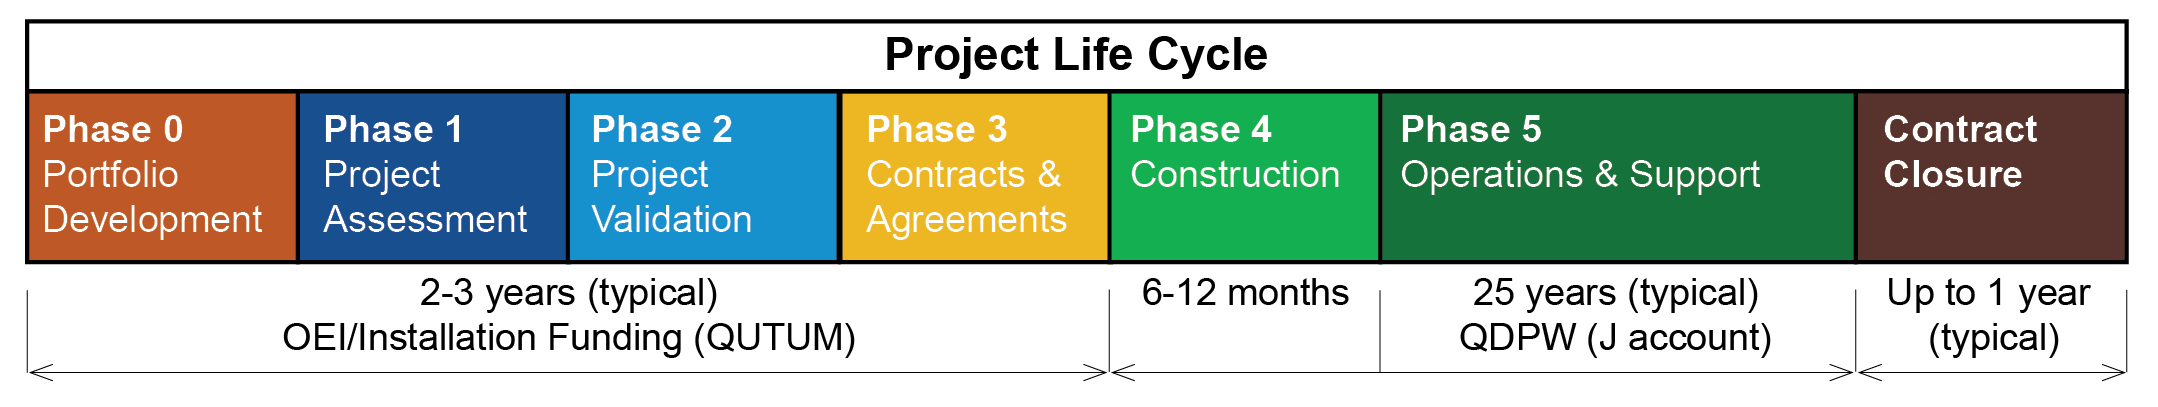 image of project life cycle flow